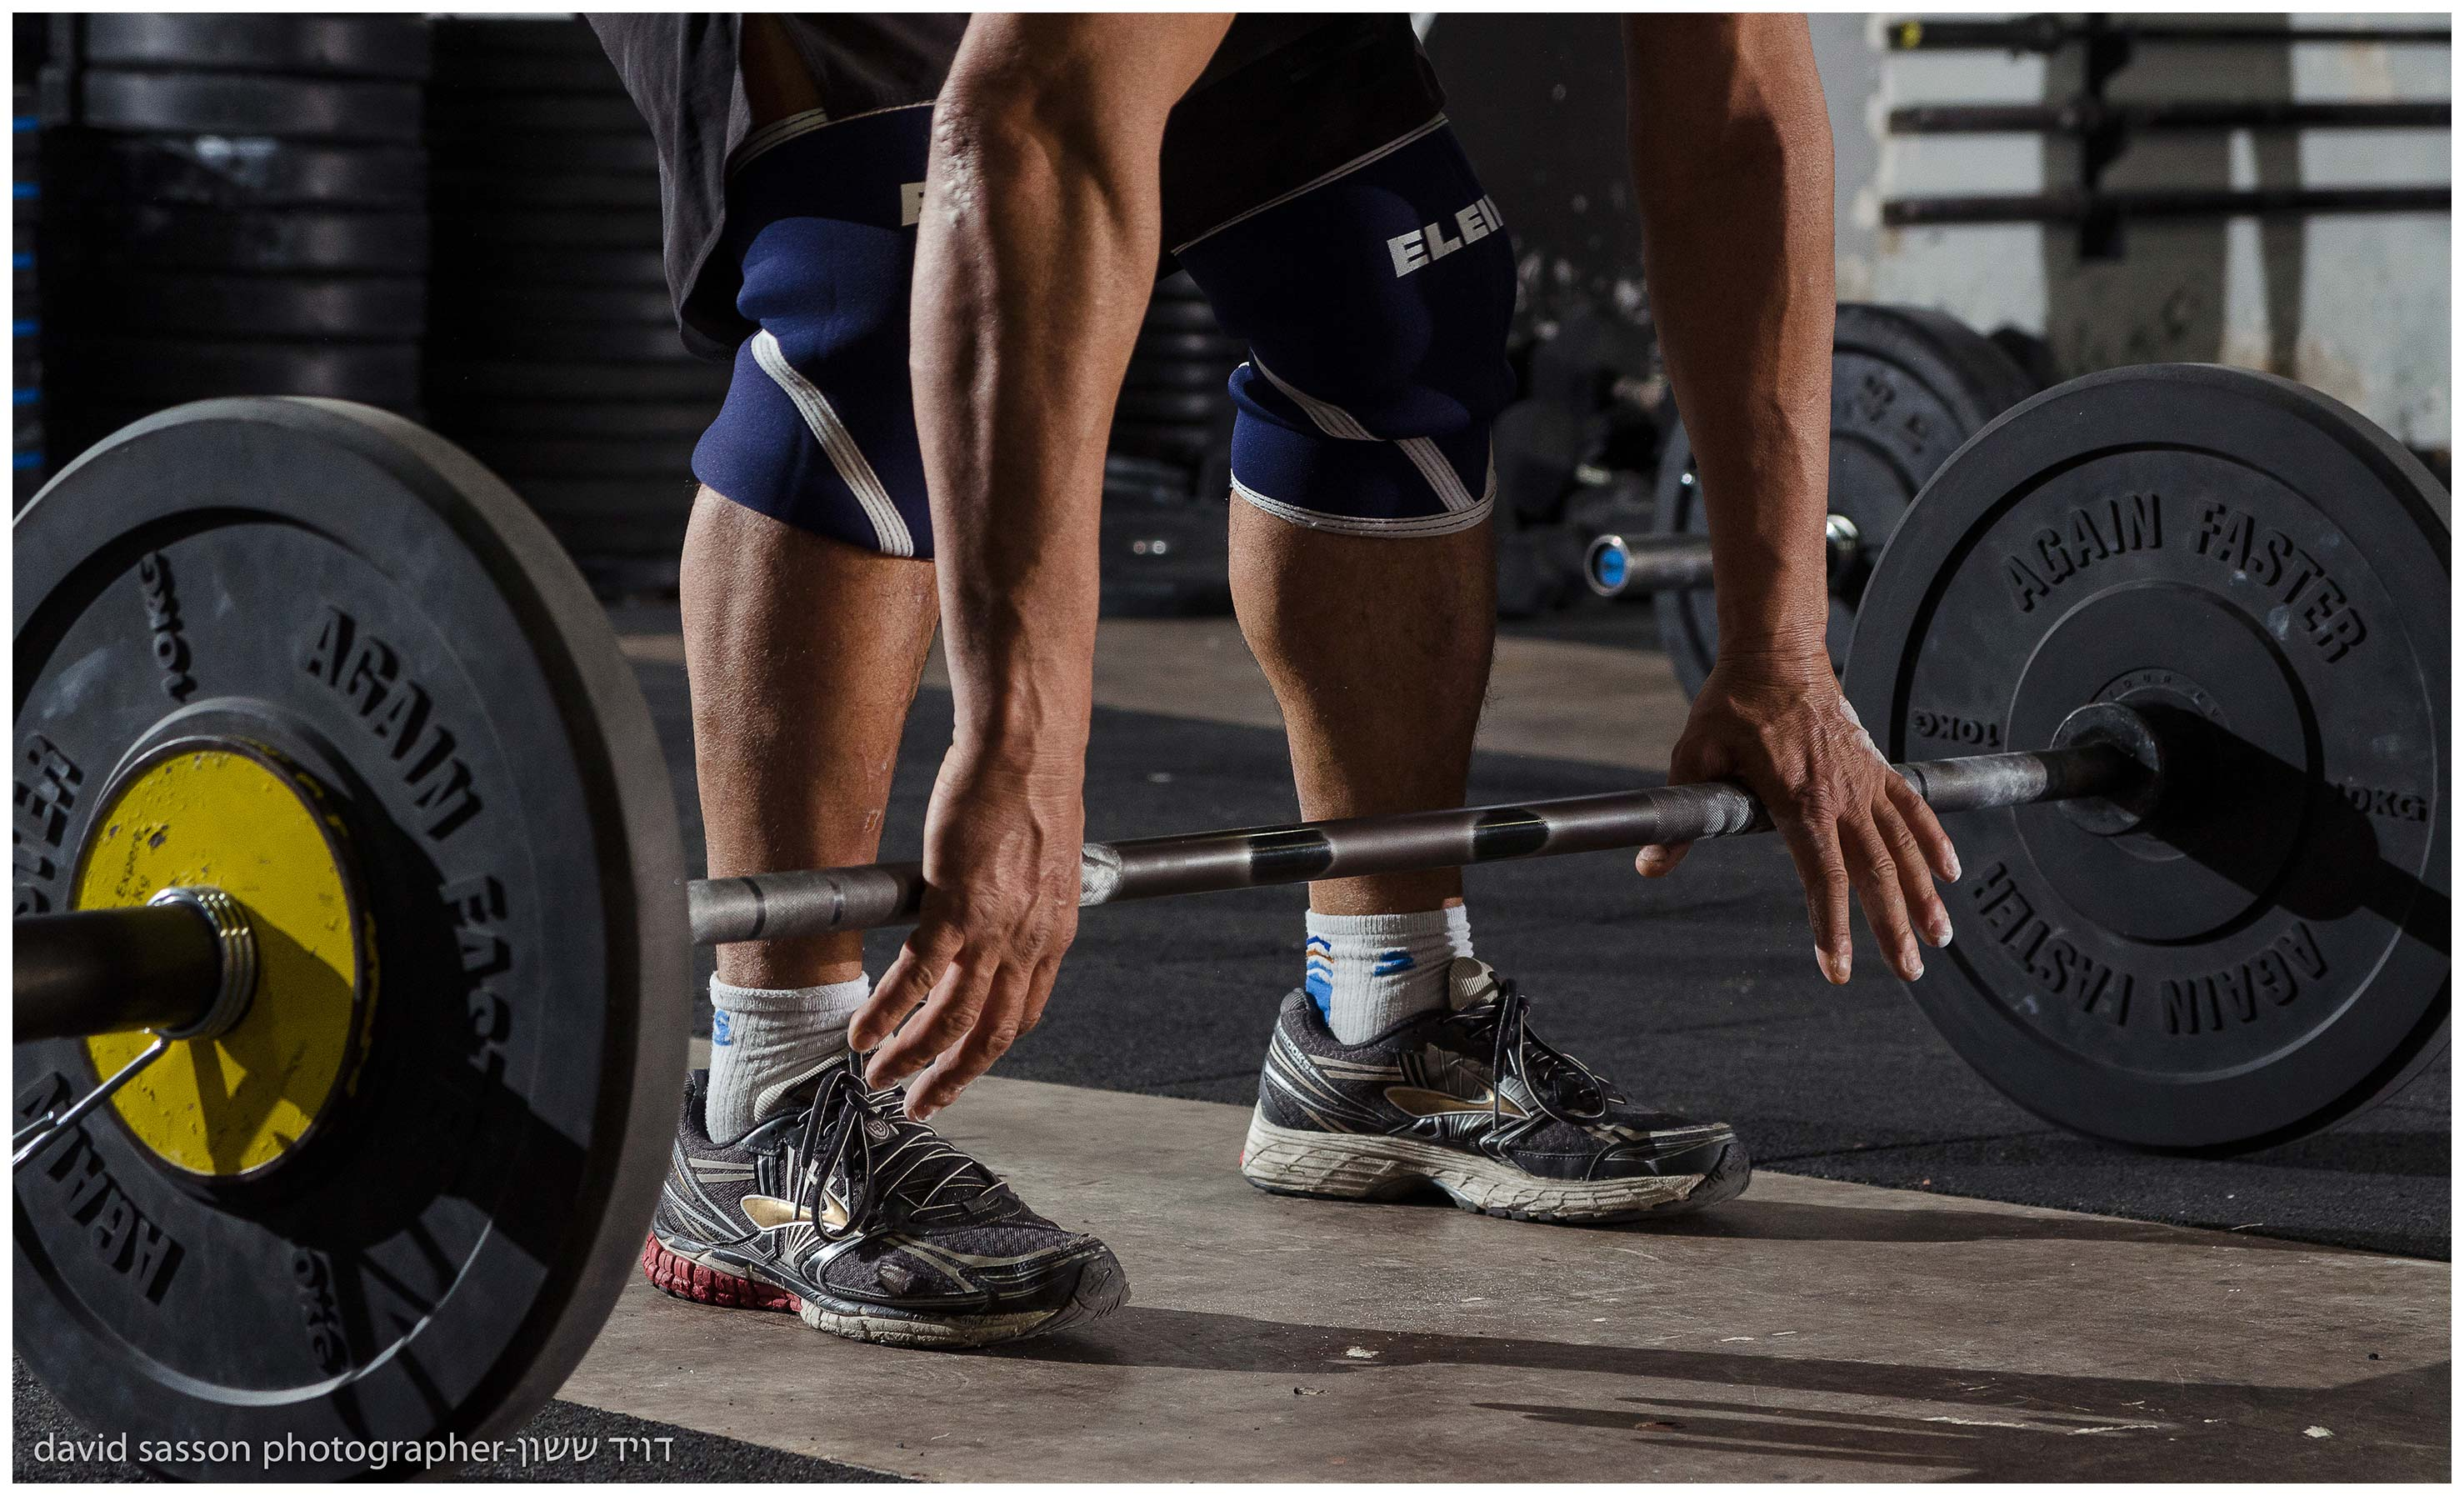 Advertising photography for CrossFit training